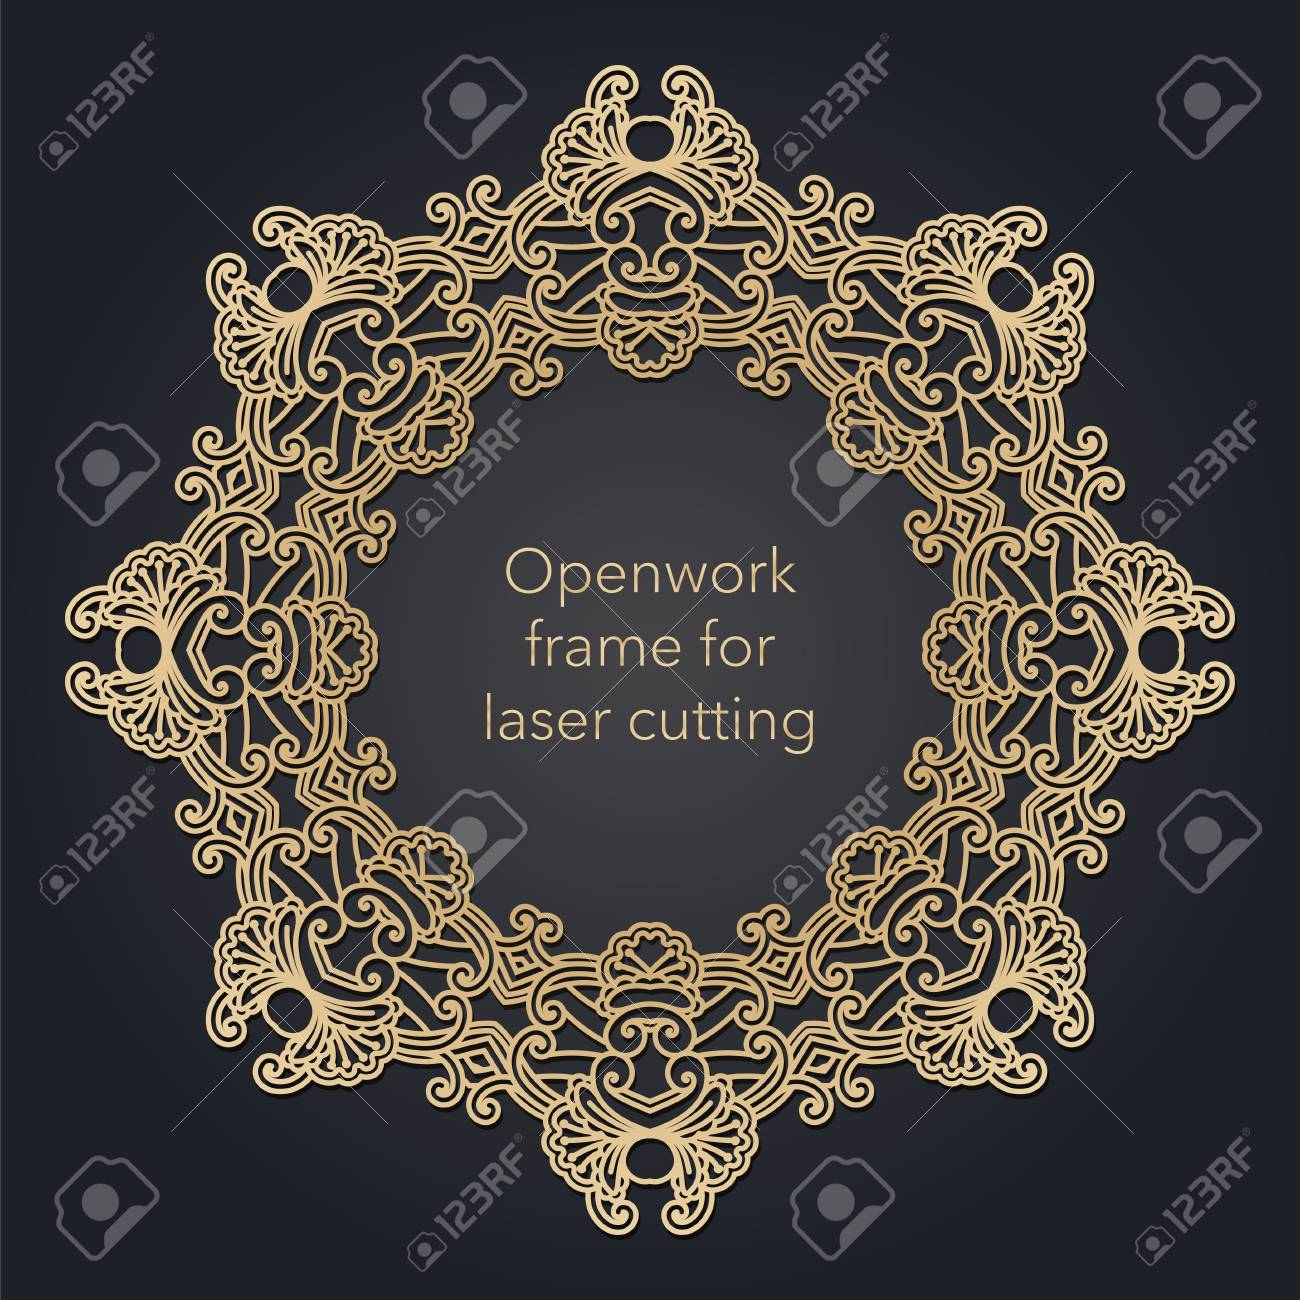 Round openwork frame for laser cutting. Mandala for interior decoration, pages, covers. Decorative ethnic ornament. Vector - 125828369